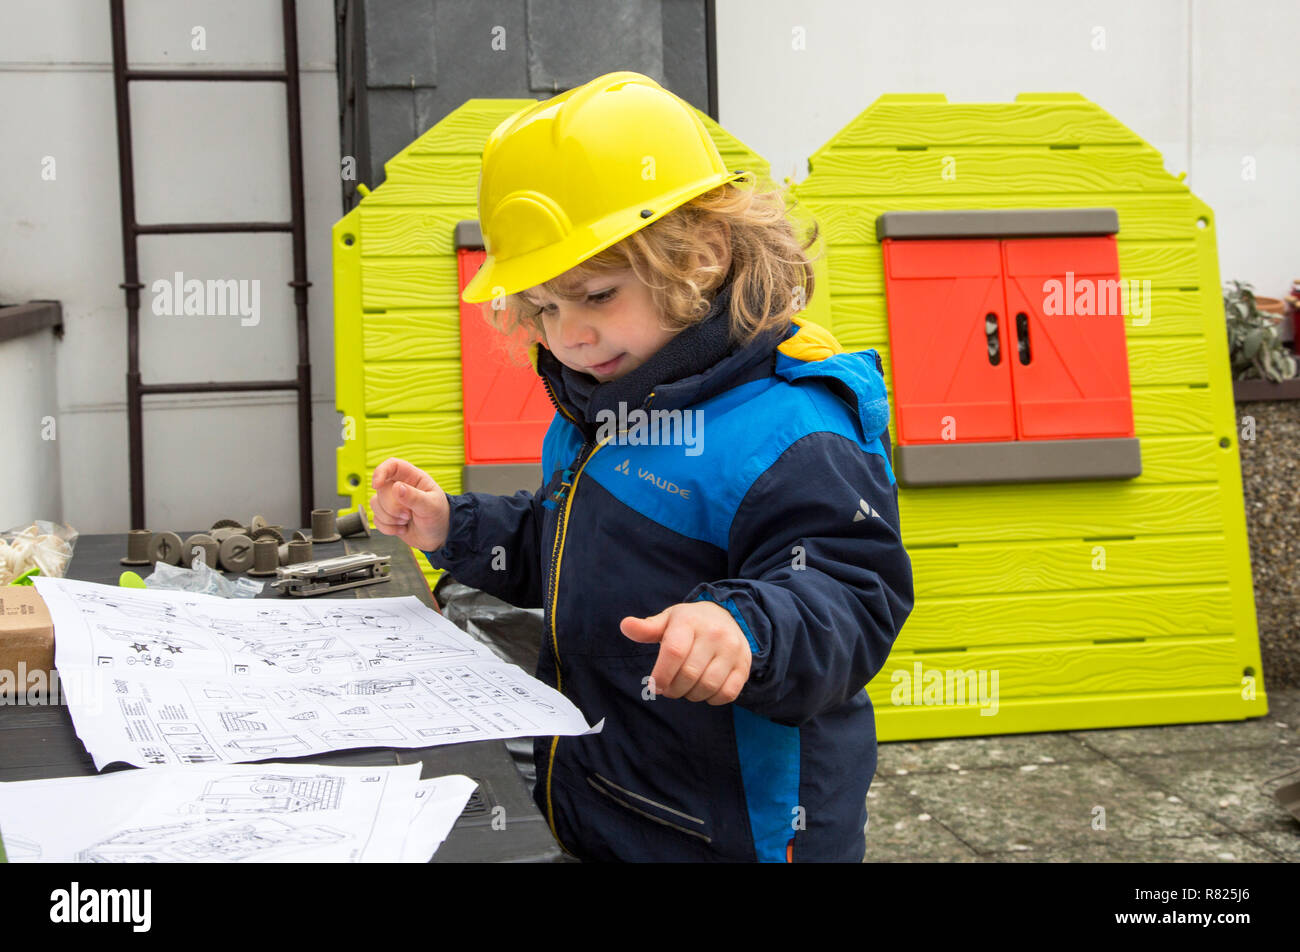 Little Boy 3 Years With Toy Hard Hat Helping To Build A Playhouse